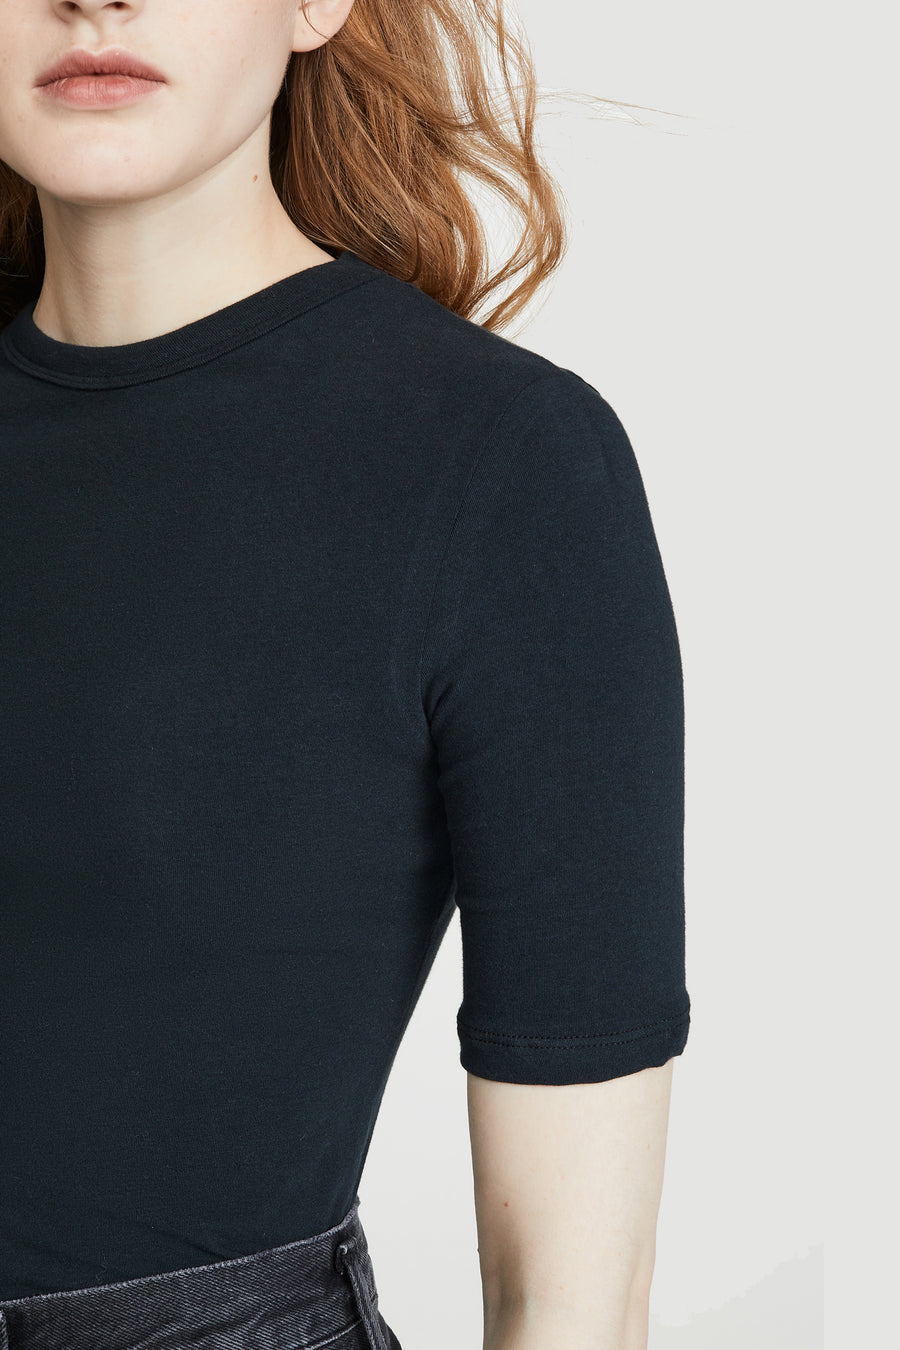 Elie Fitted Tee - Nocturne - Pavilion